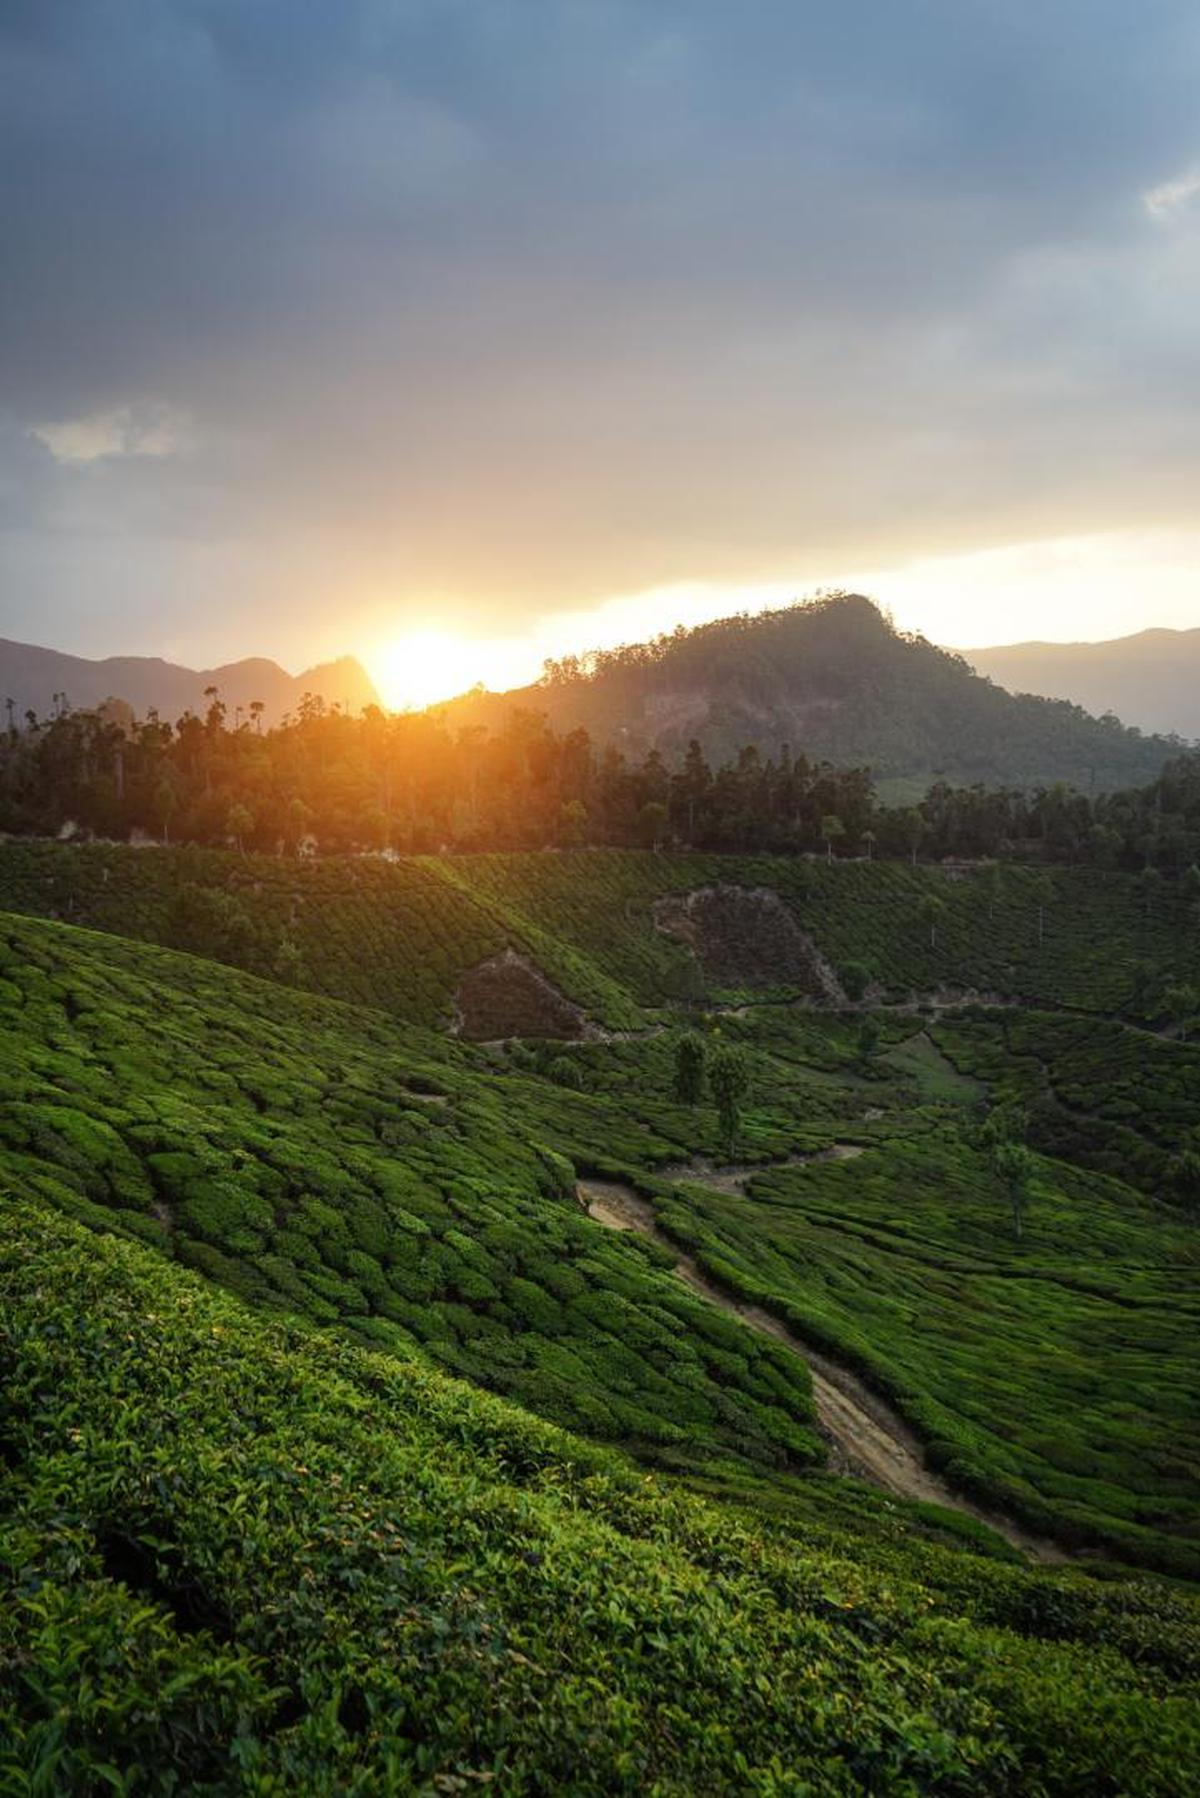 Image of Nature, Sky, Green, Highland, Morning, Hill station etc.